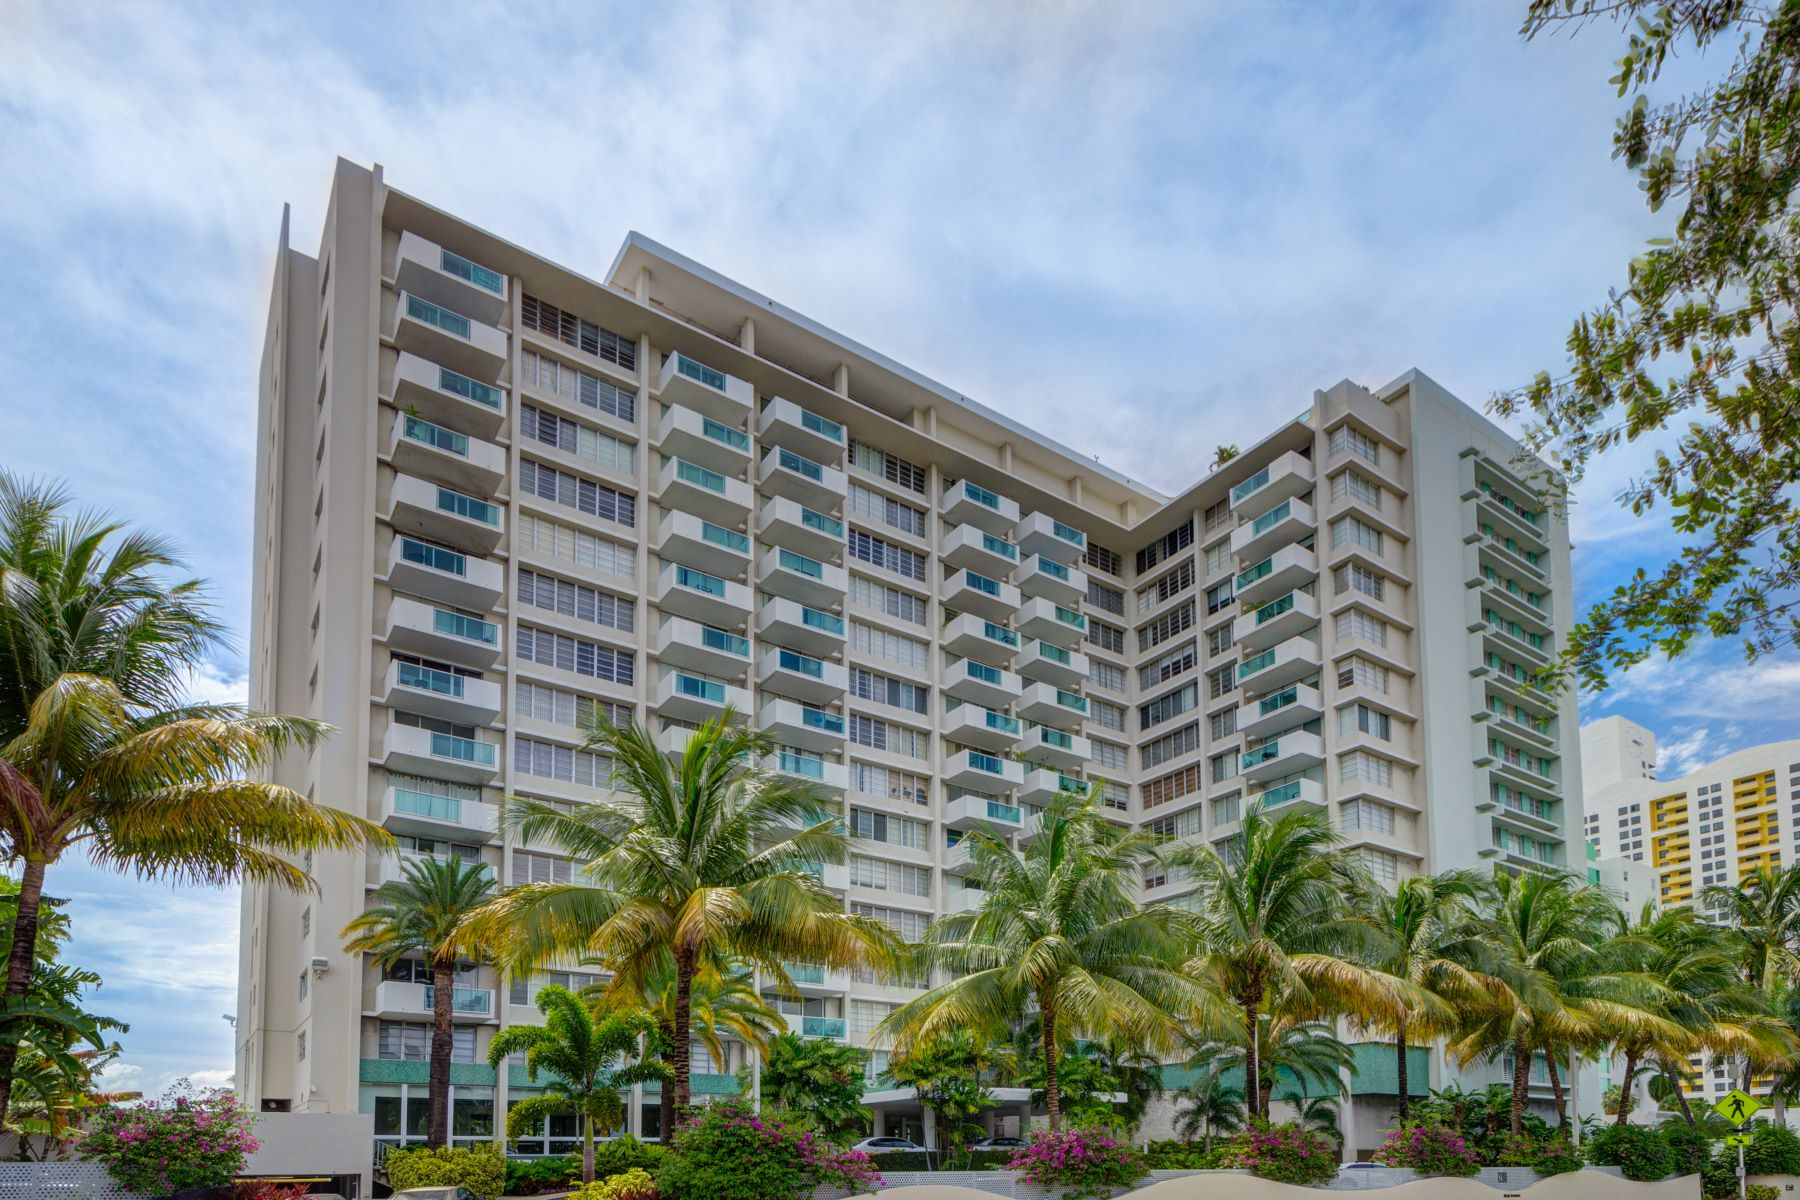 Condominium for Sale at 1000 West Ave #1008 1000 West Ave 1008, Miami Beach, Florida, 33139 United States